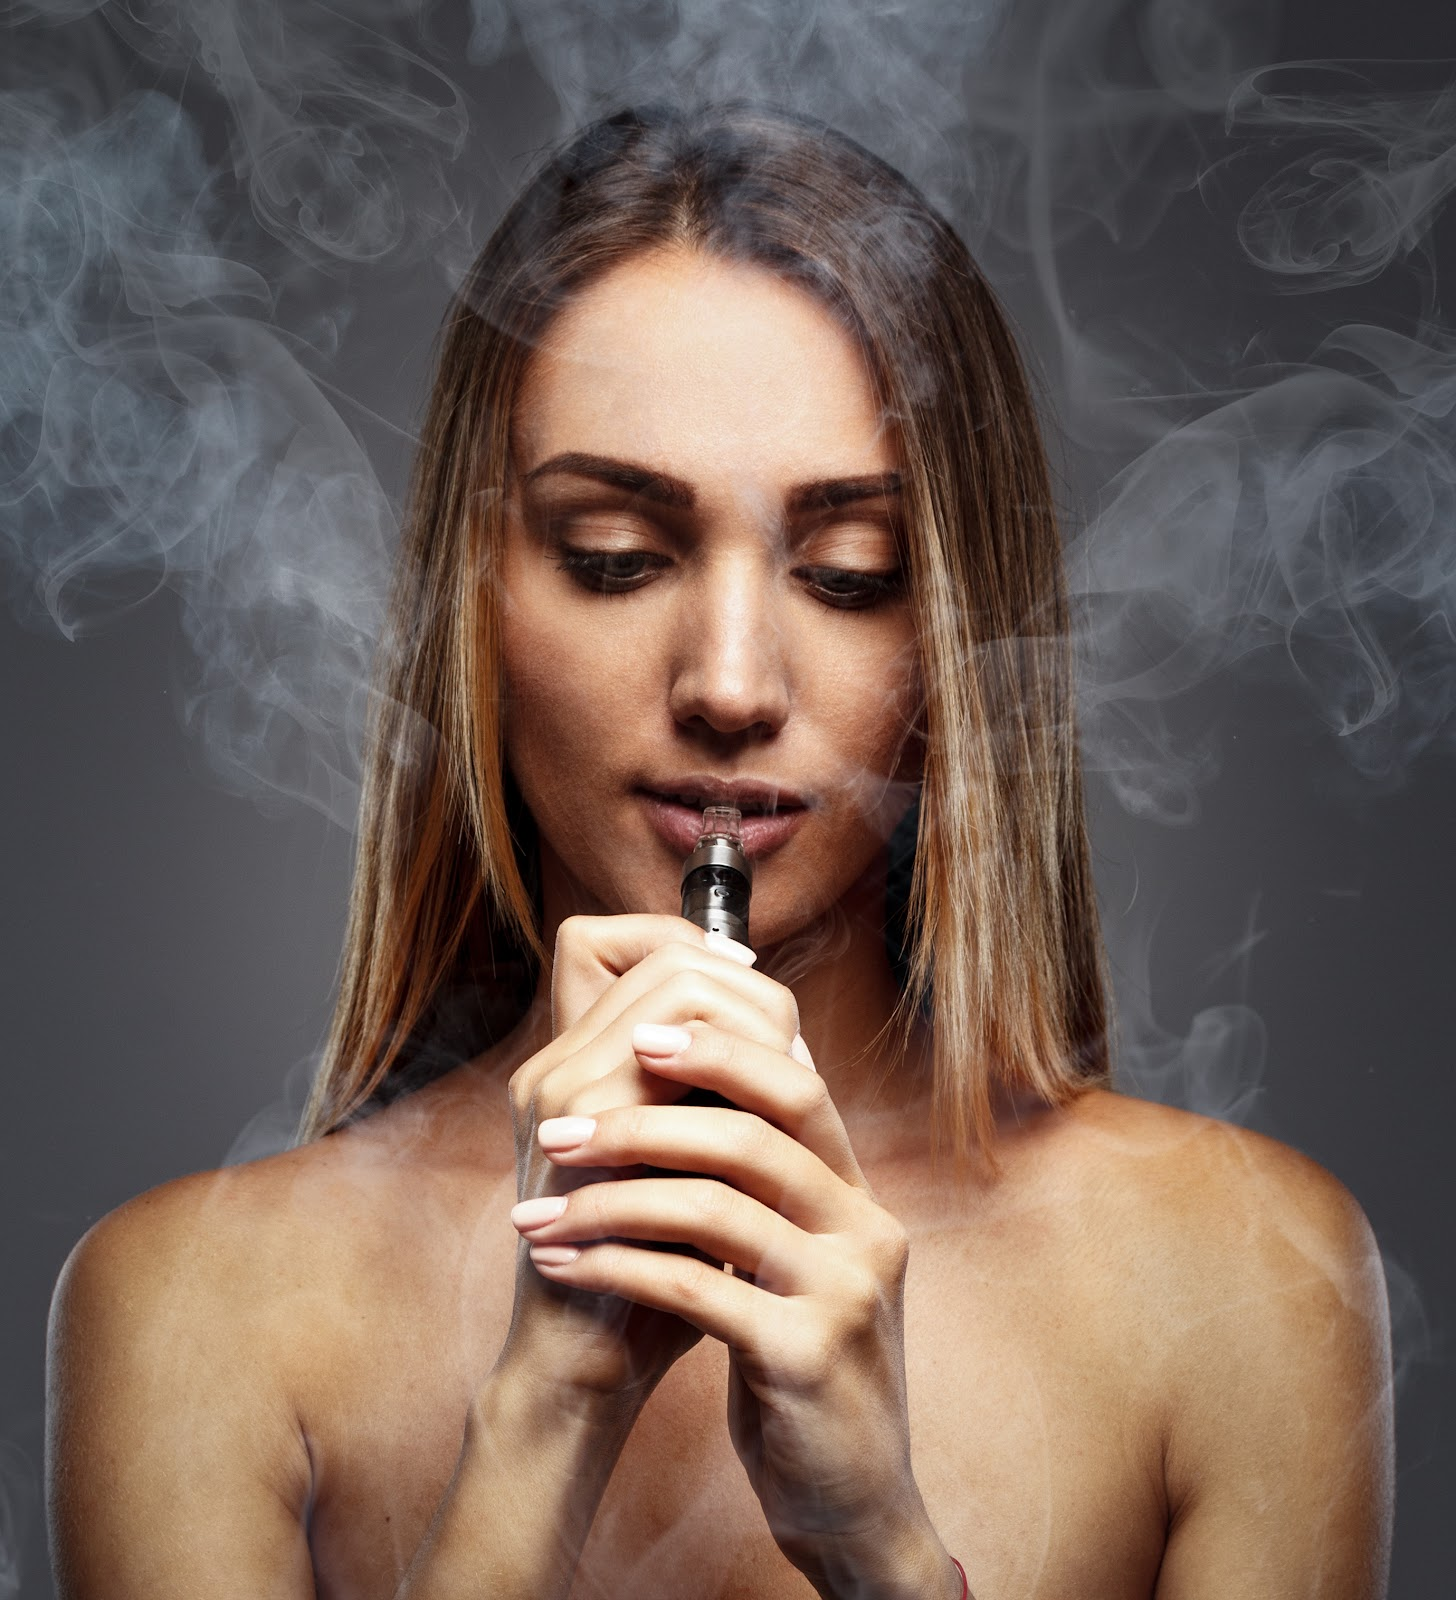 Health Benefits of Vaping Nicotine